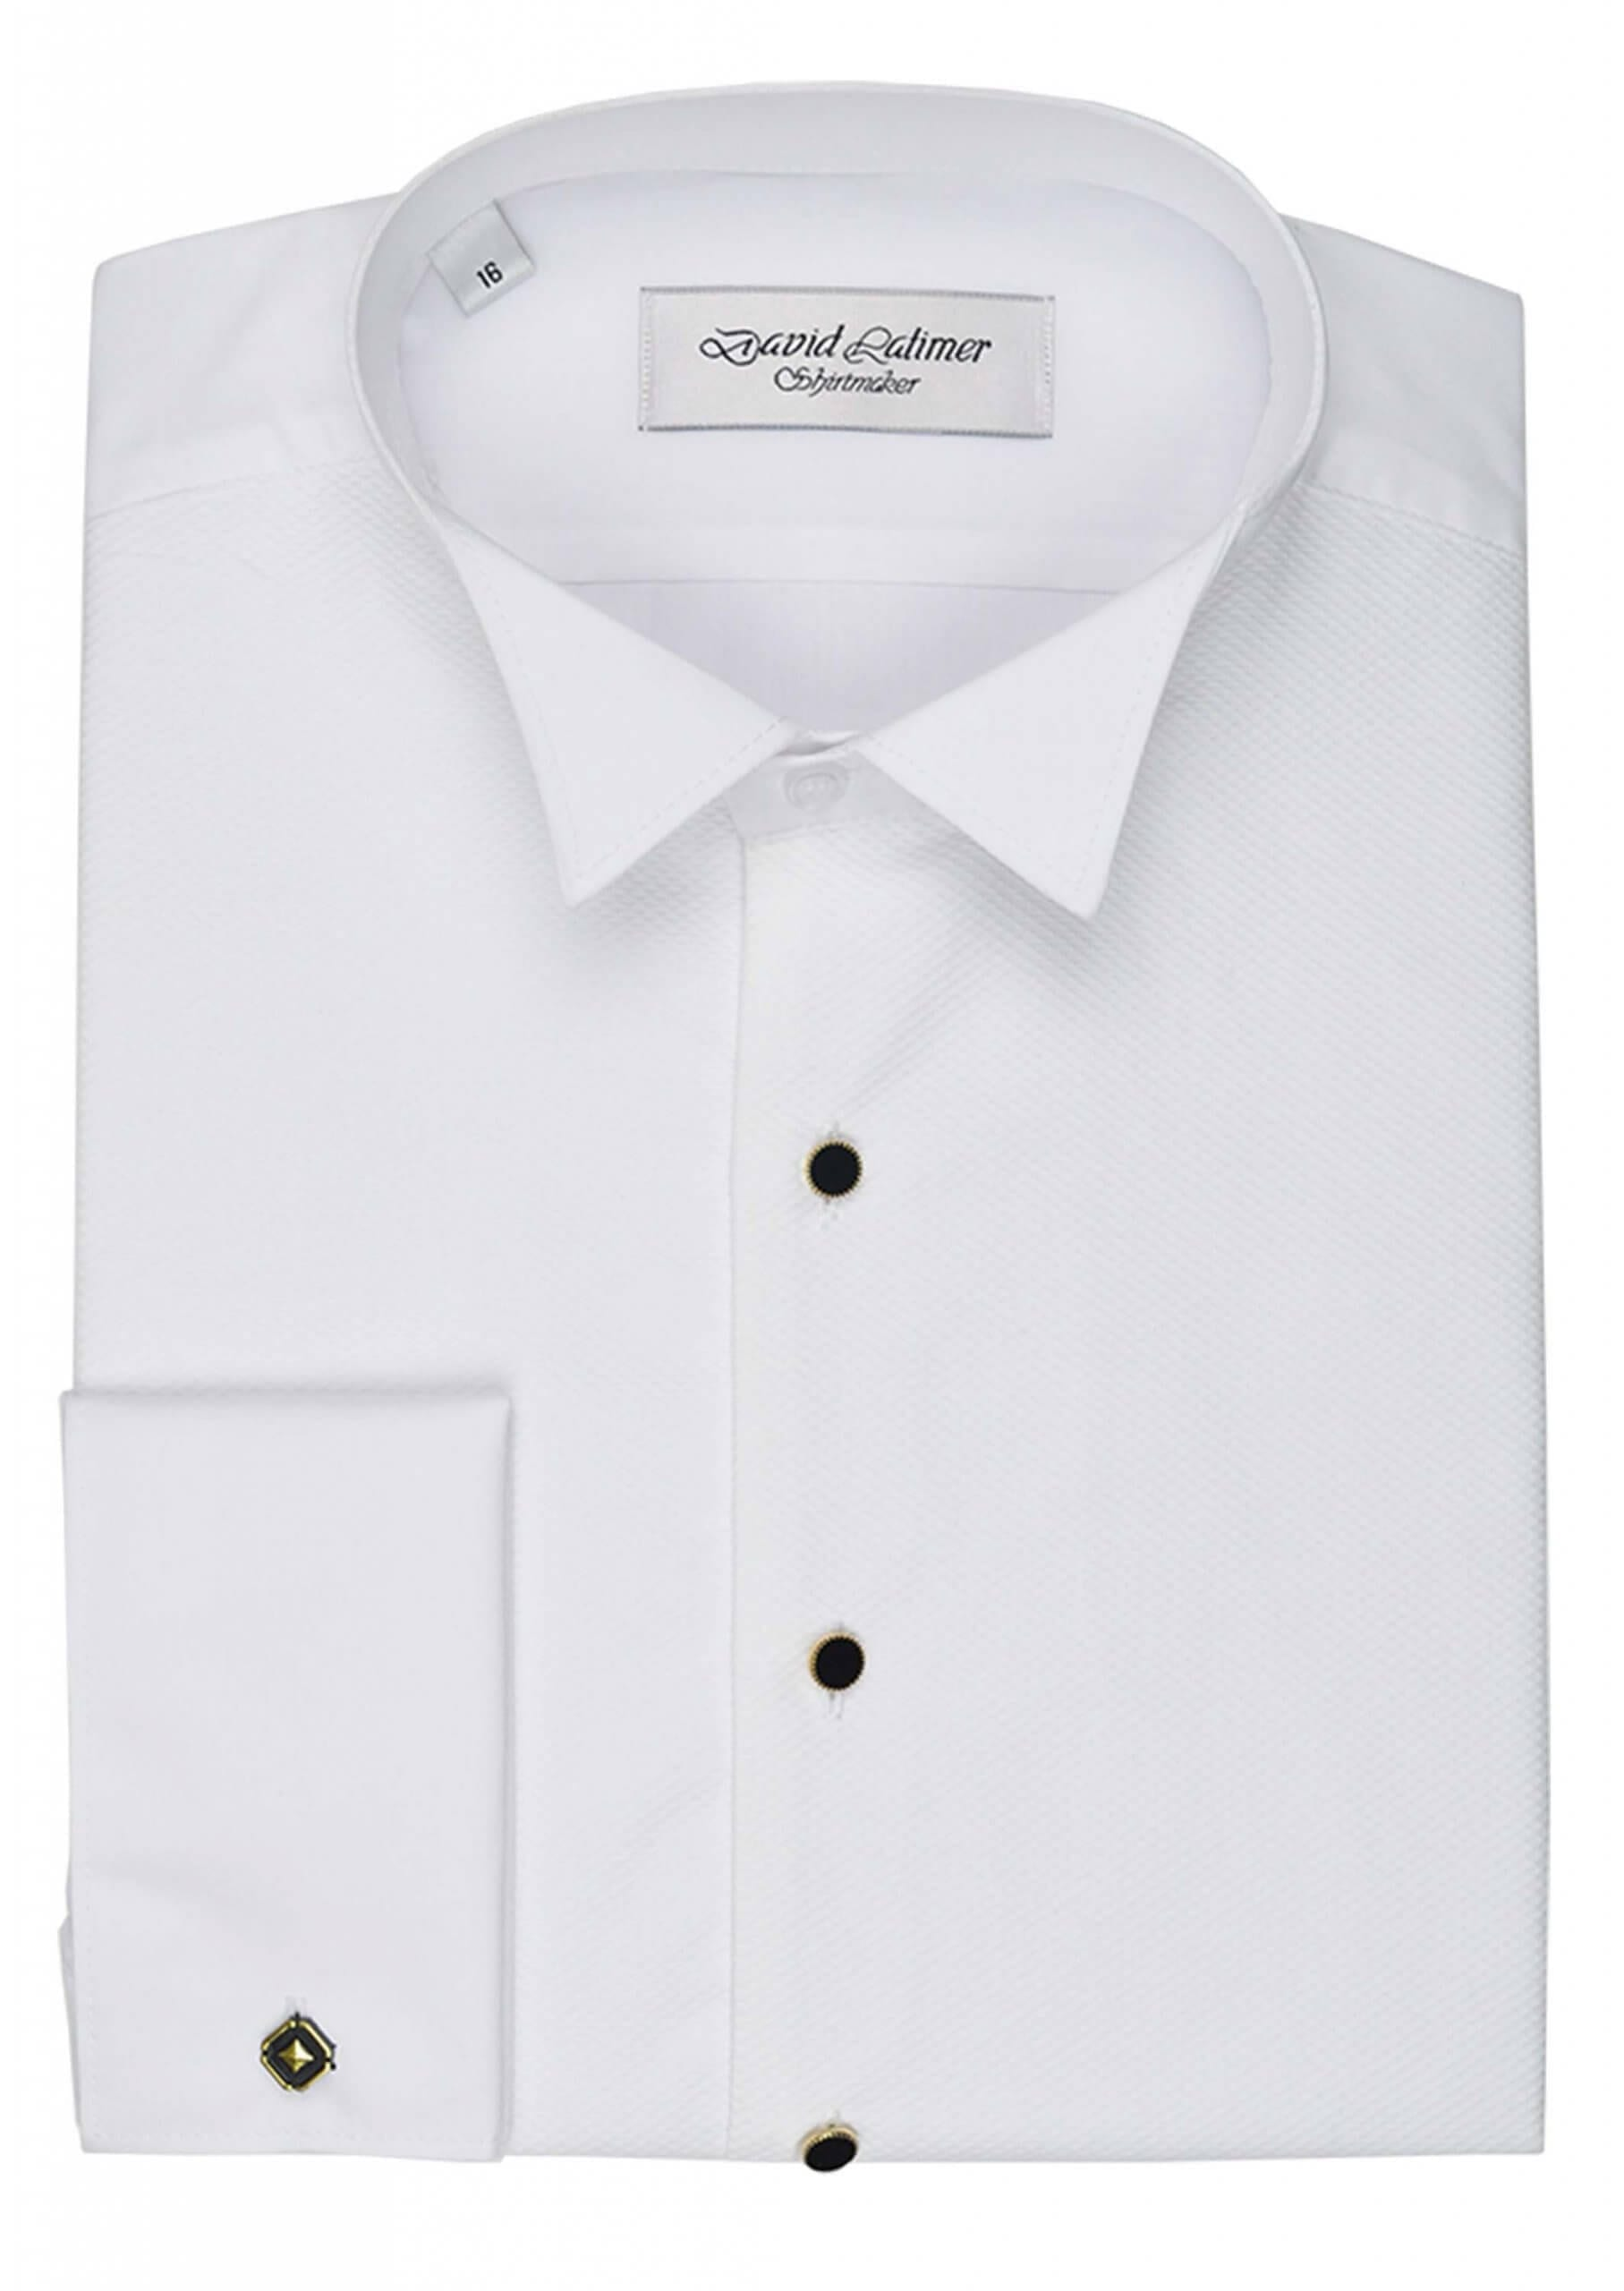 Marcella Front Dress Shirt with Studs, in Standard or Wing Collar